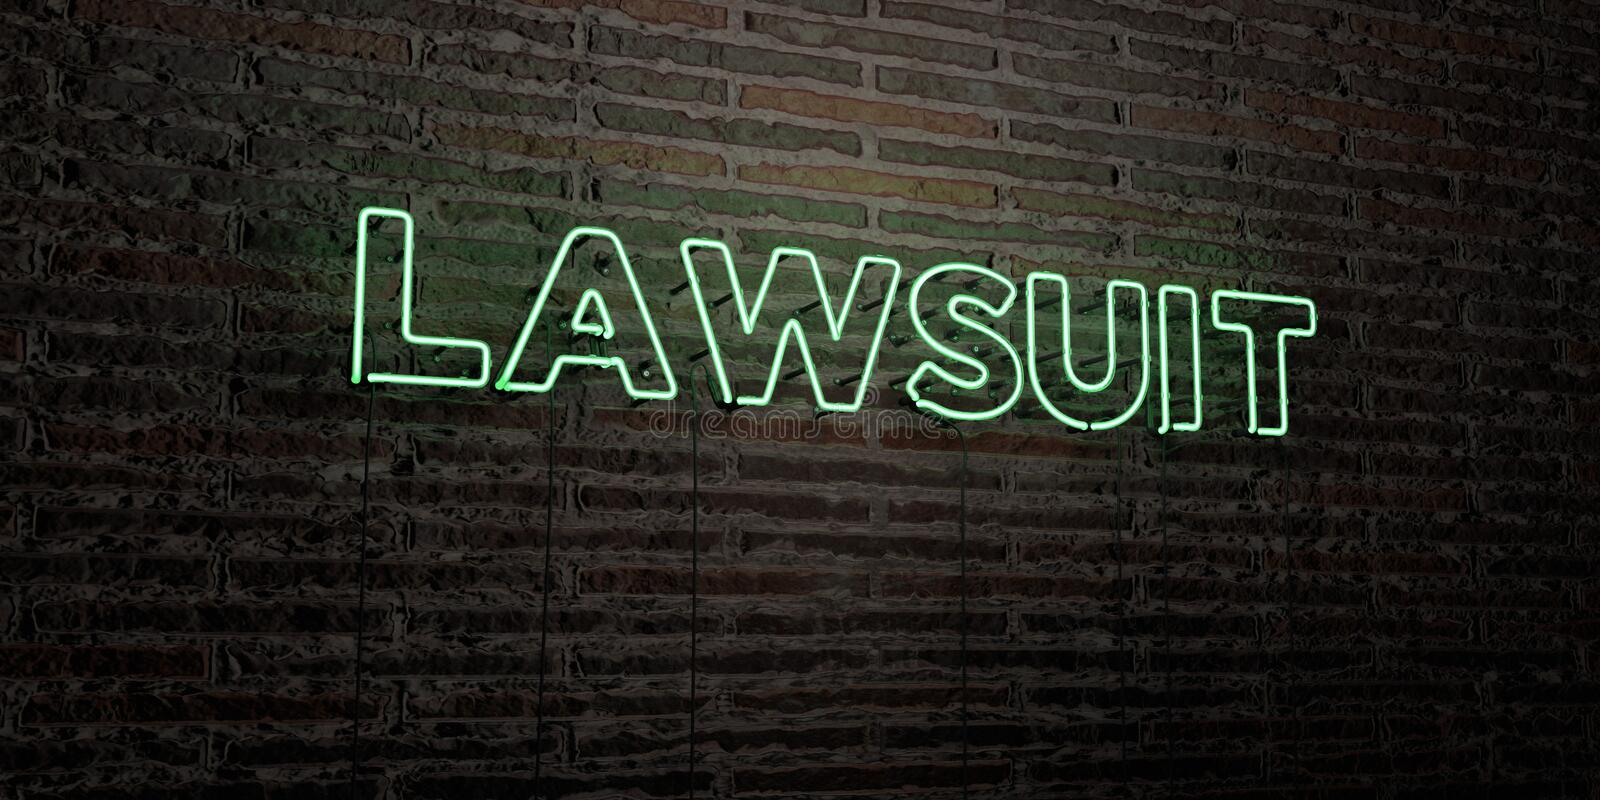 LAWSUIT -Realistic Neon Sign on Brick Wall background - 3D rendered royalty free stock image royalty free illustration